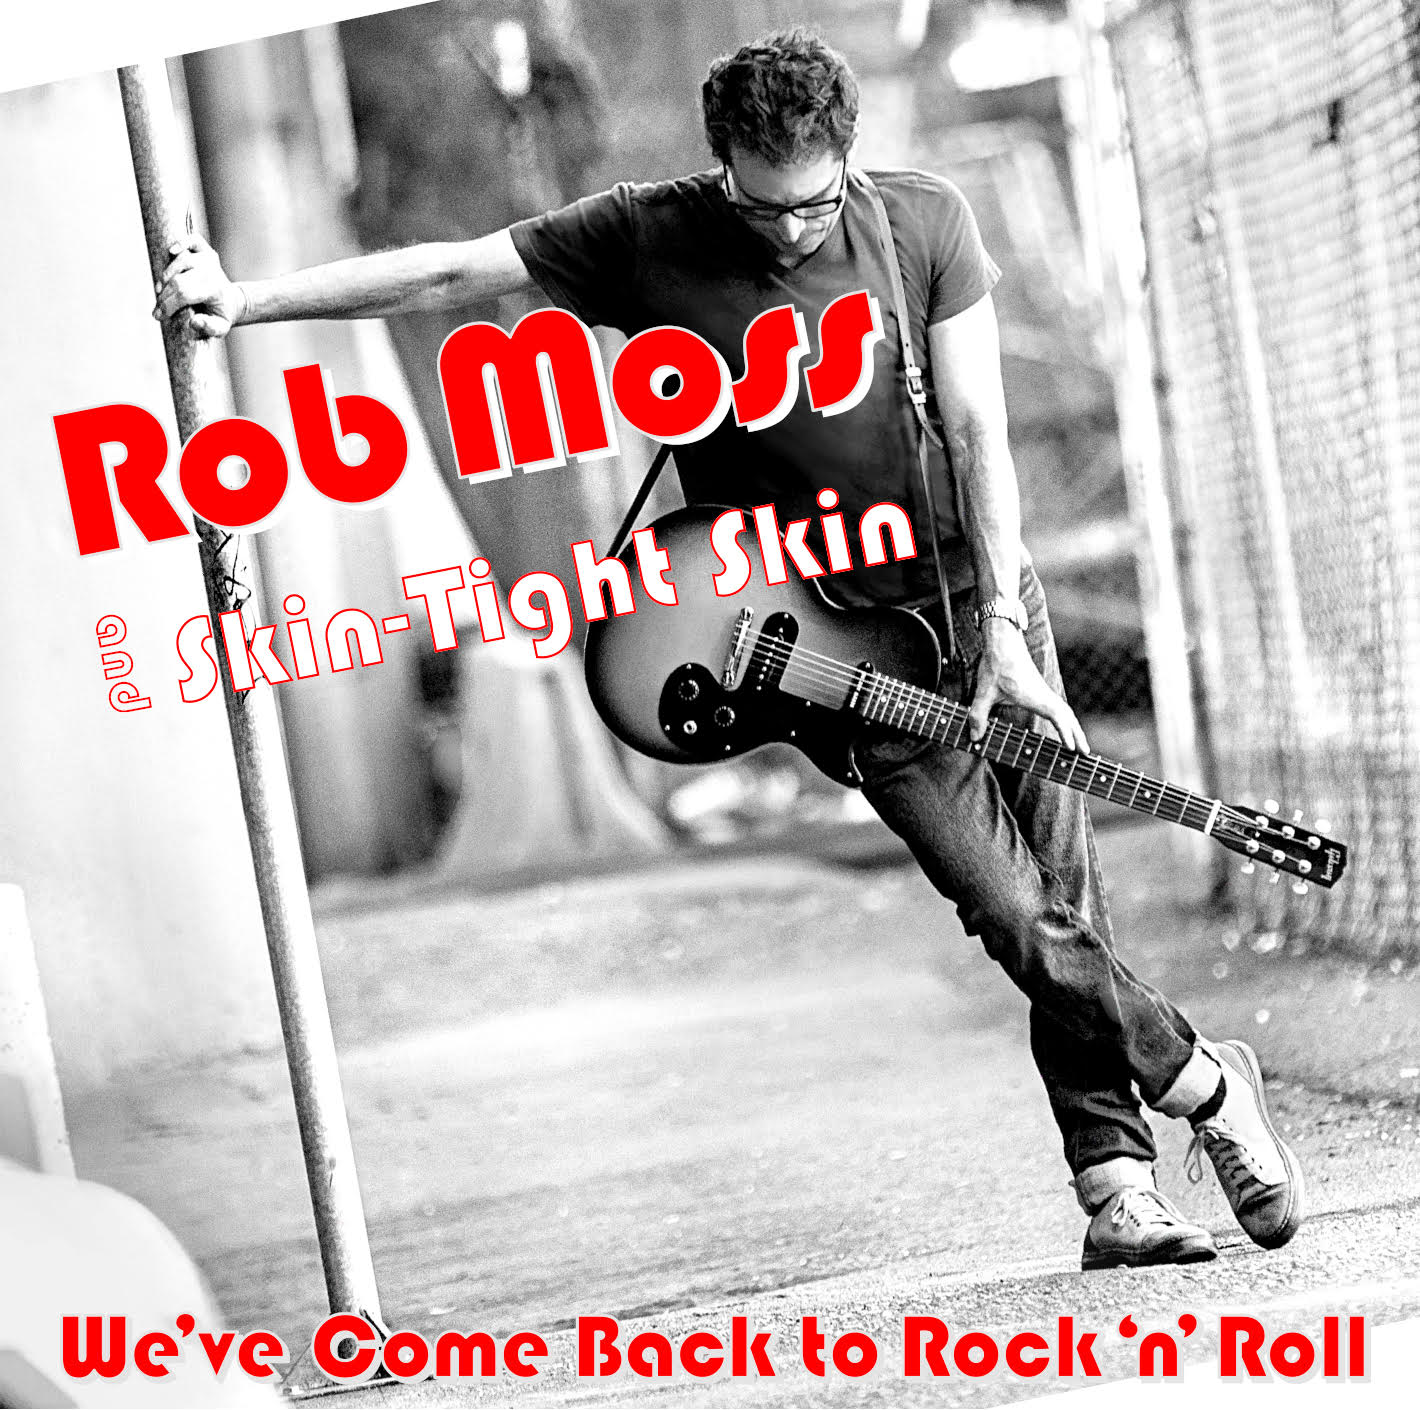 ROB MOSS of ROB MOSS AND SKIN-TIGHT SKIN – Song For Ewe